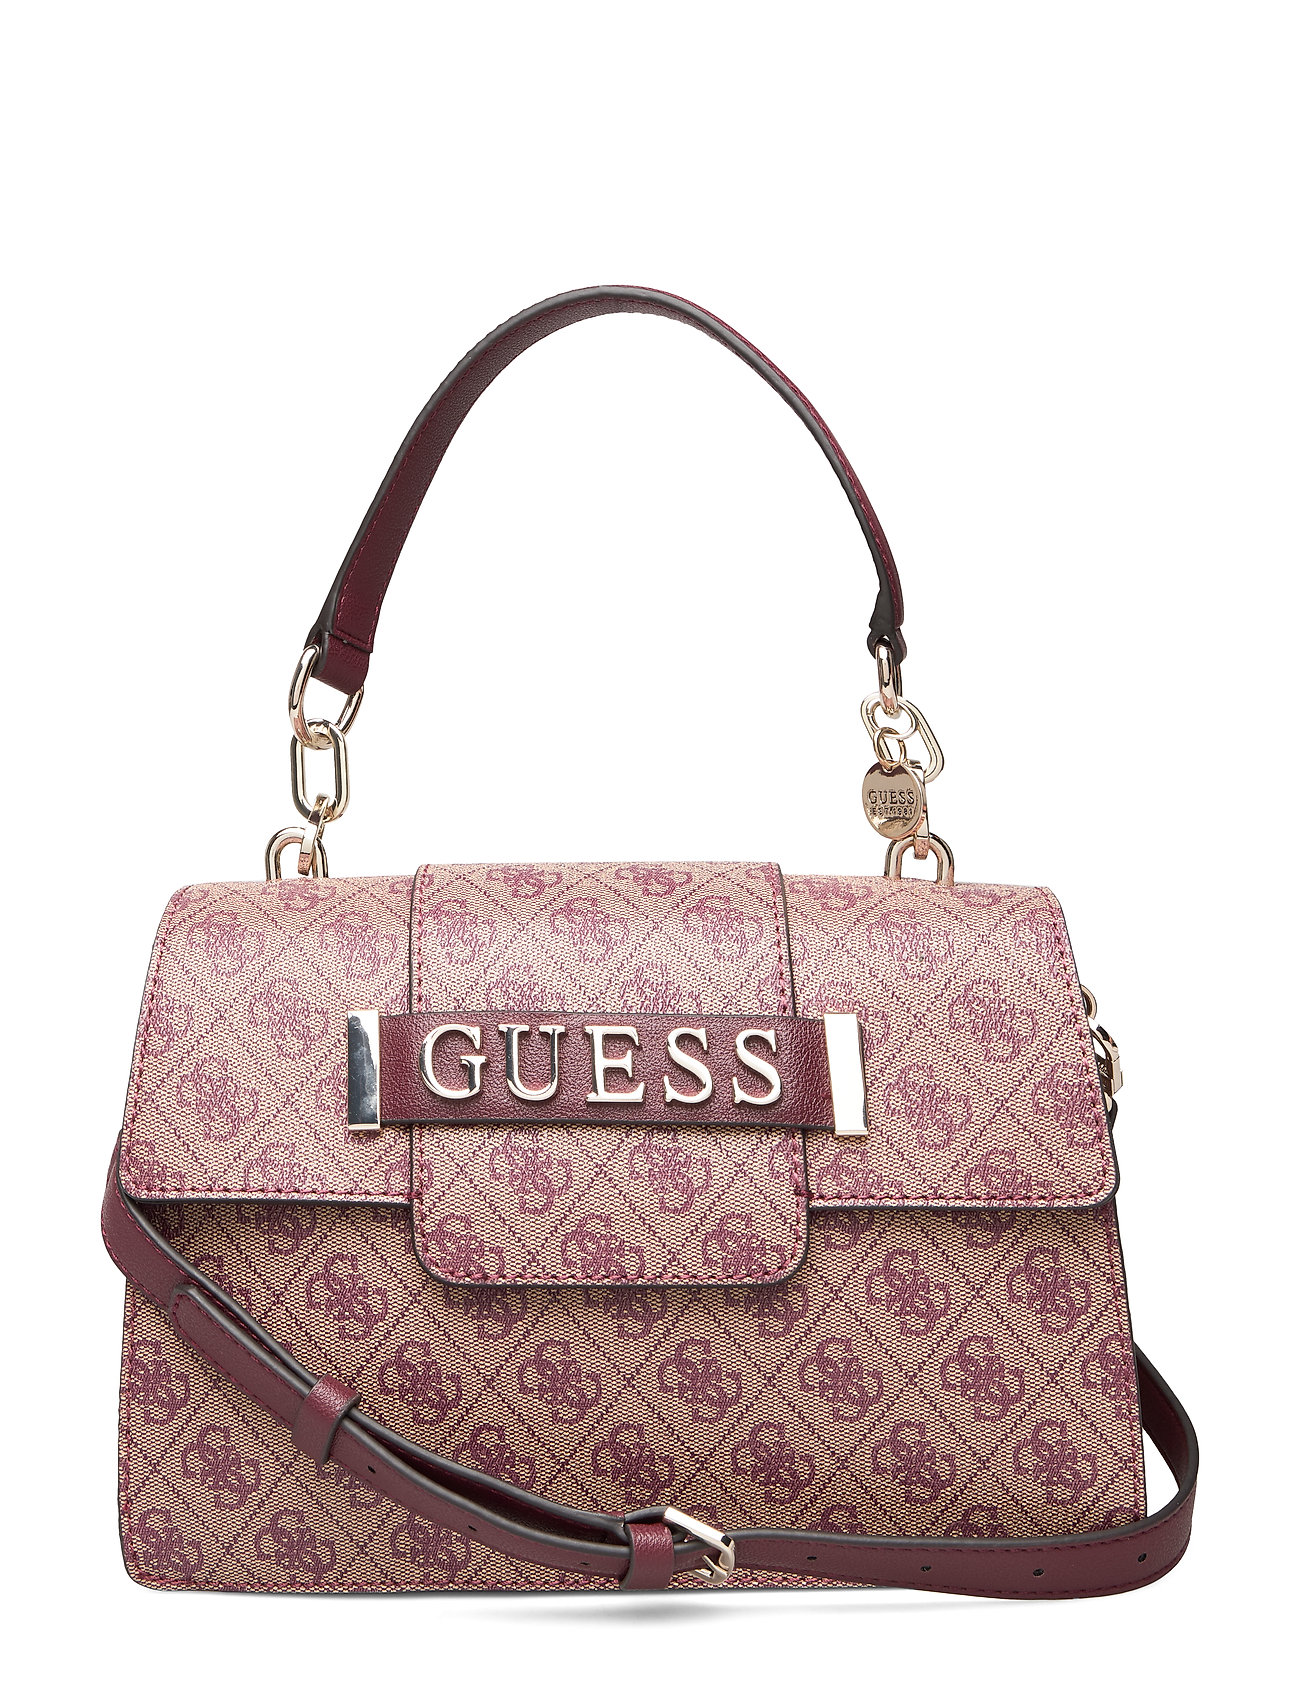 GUESS Kerrigan Top Handle Flap Bags Top Handle Bags Pink GUESS